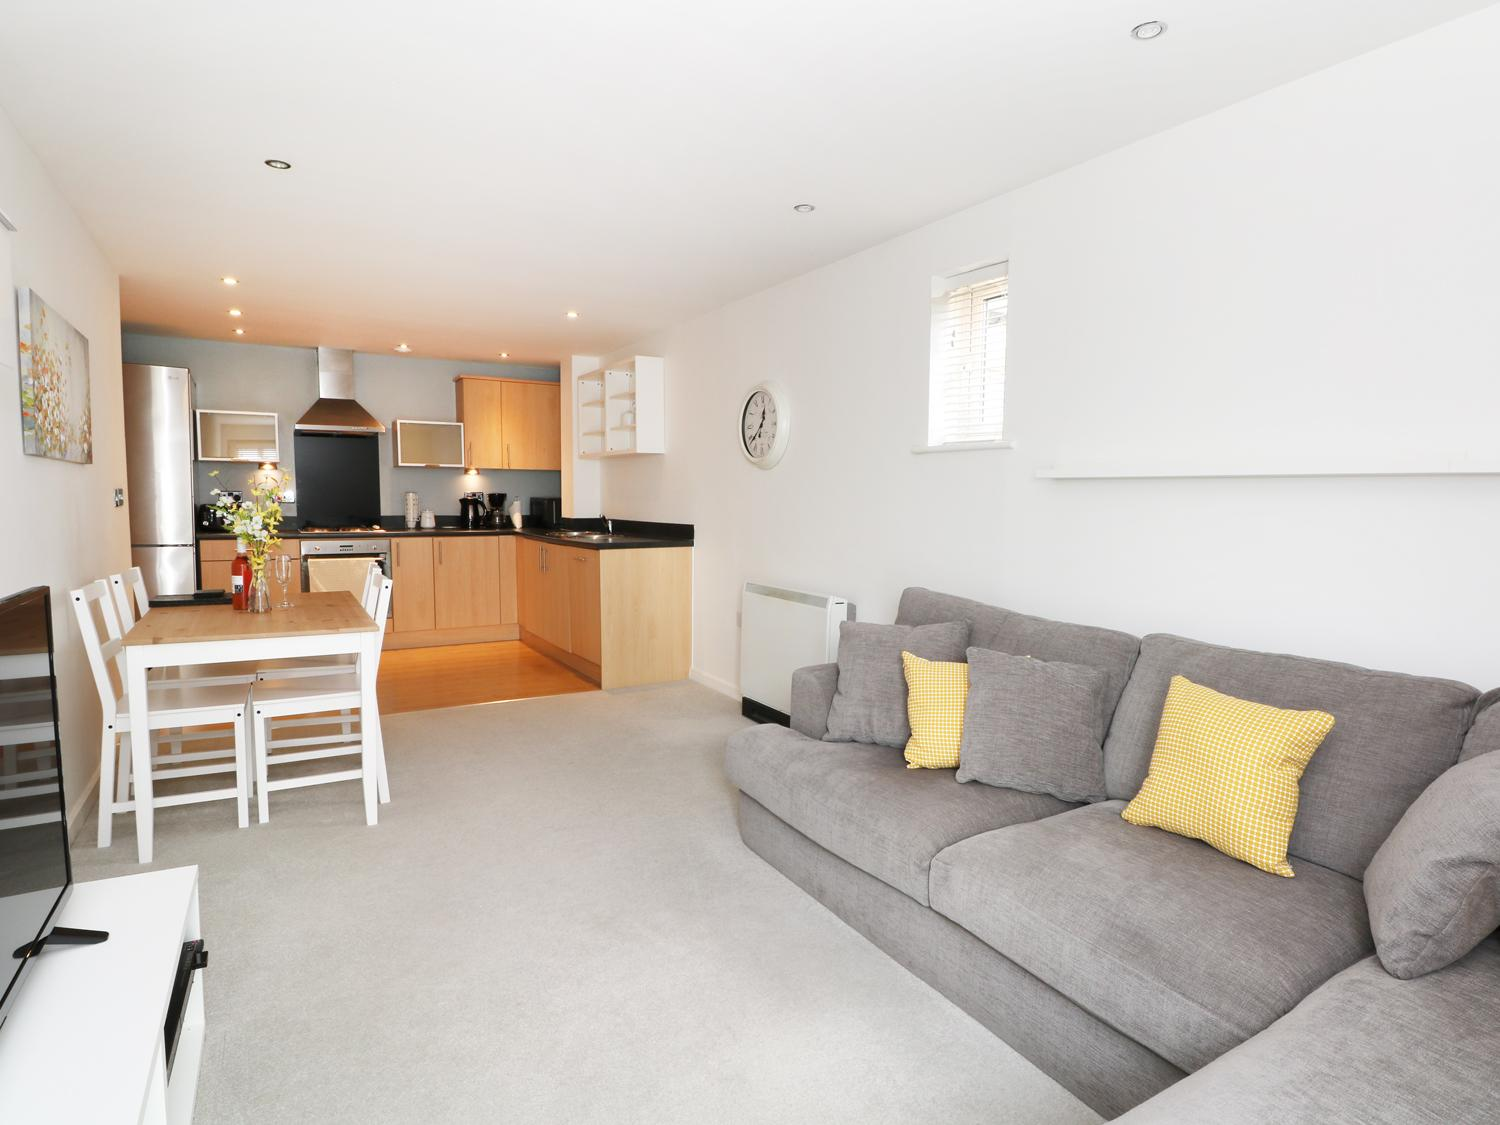 Holiday Cottage Reviews for 25 Saddlery Way - Holiday Cottage in Chester, Cheshire